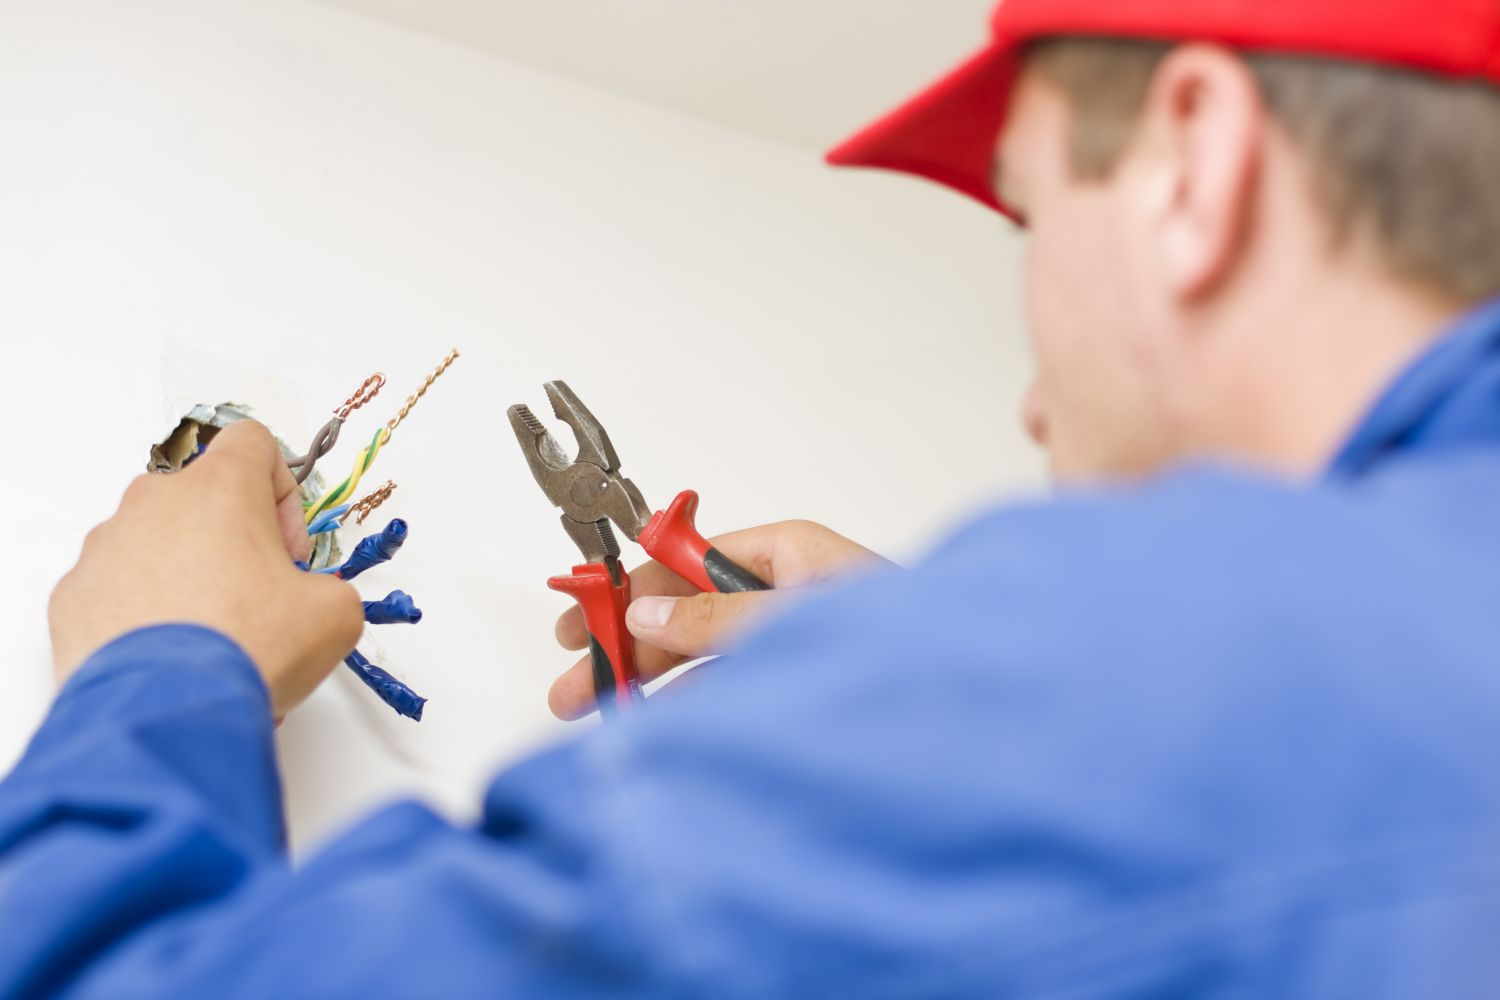 A master electrician in La Crosse, WI